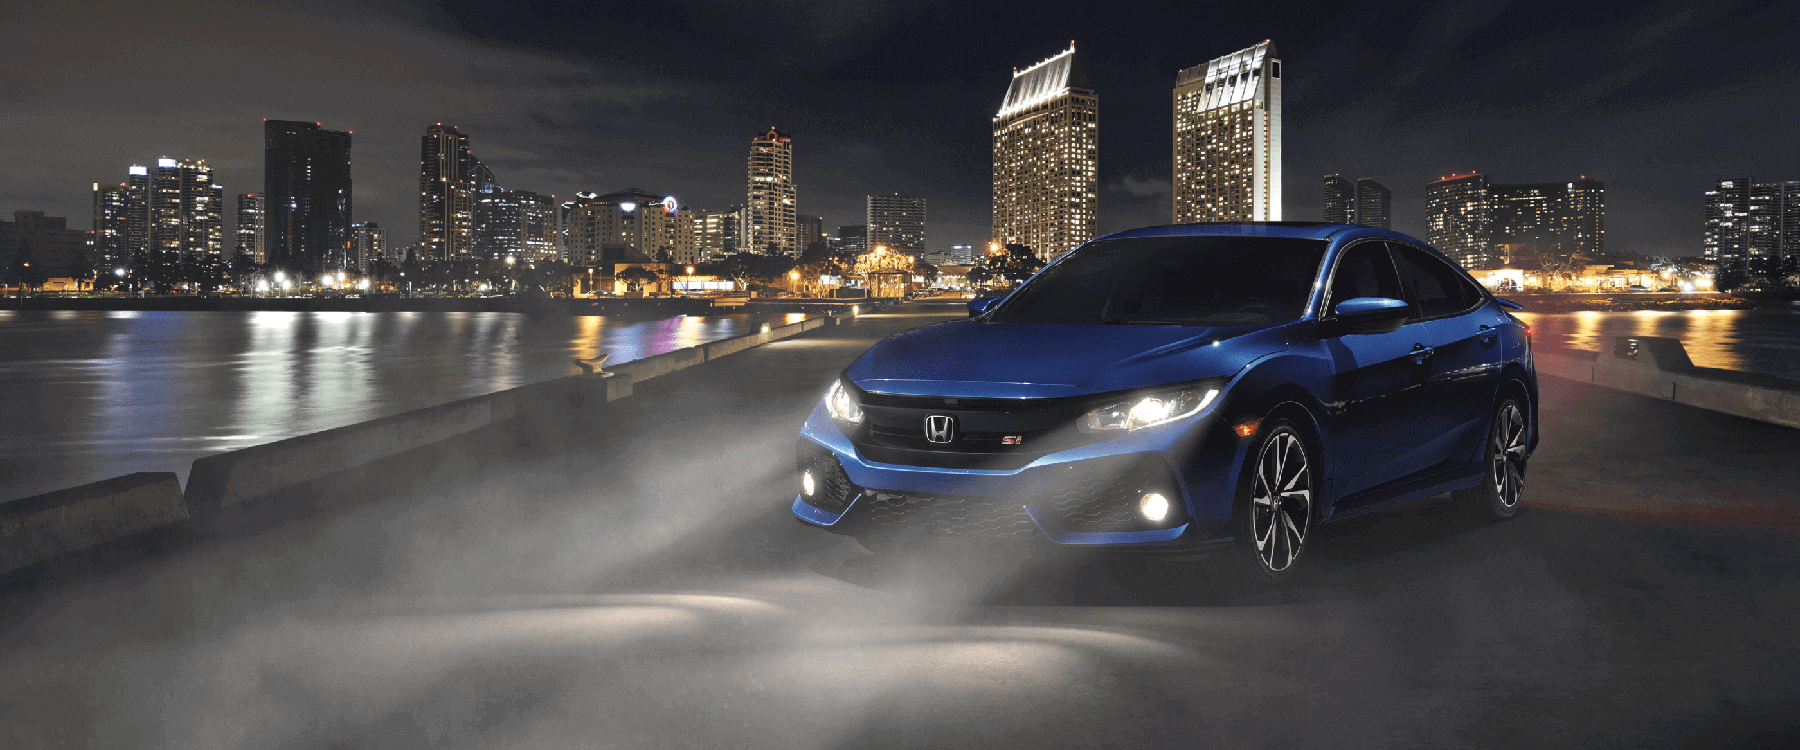 2017 Civic Si Specs >> Performance Specs Of The 2017 Honda Civic Si